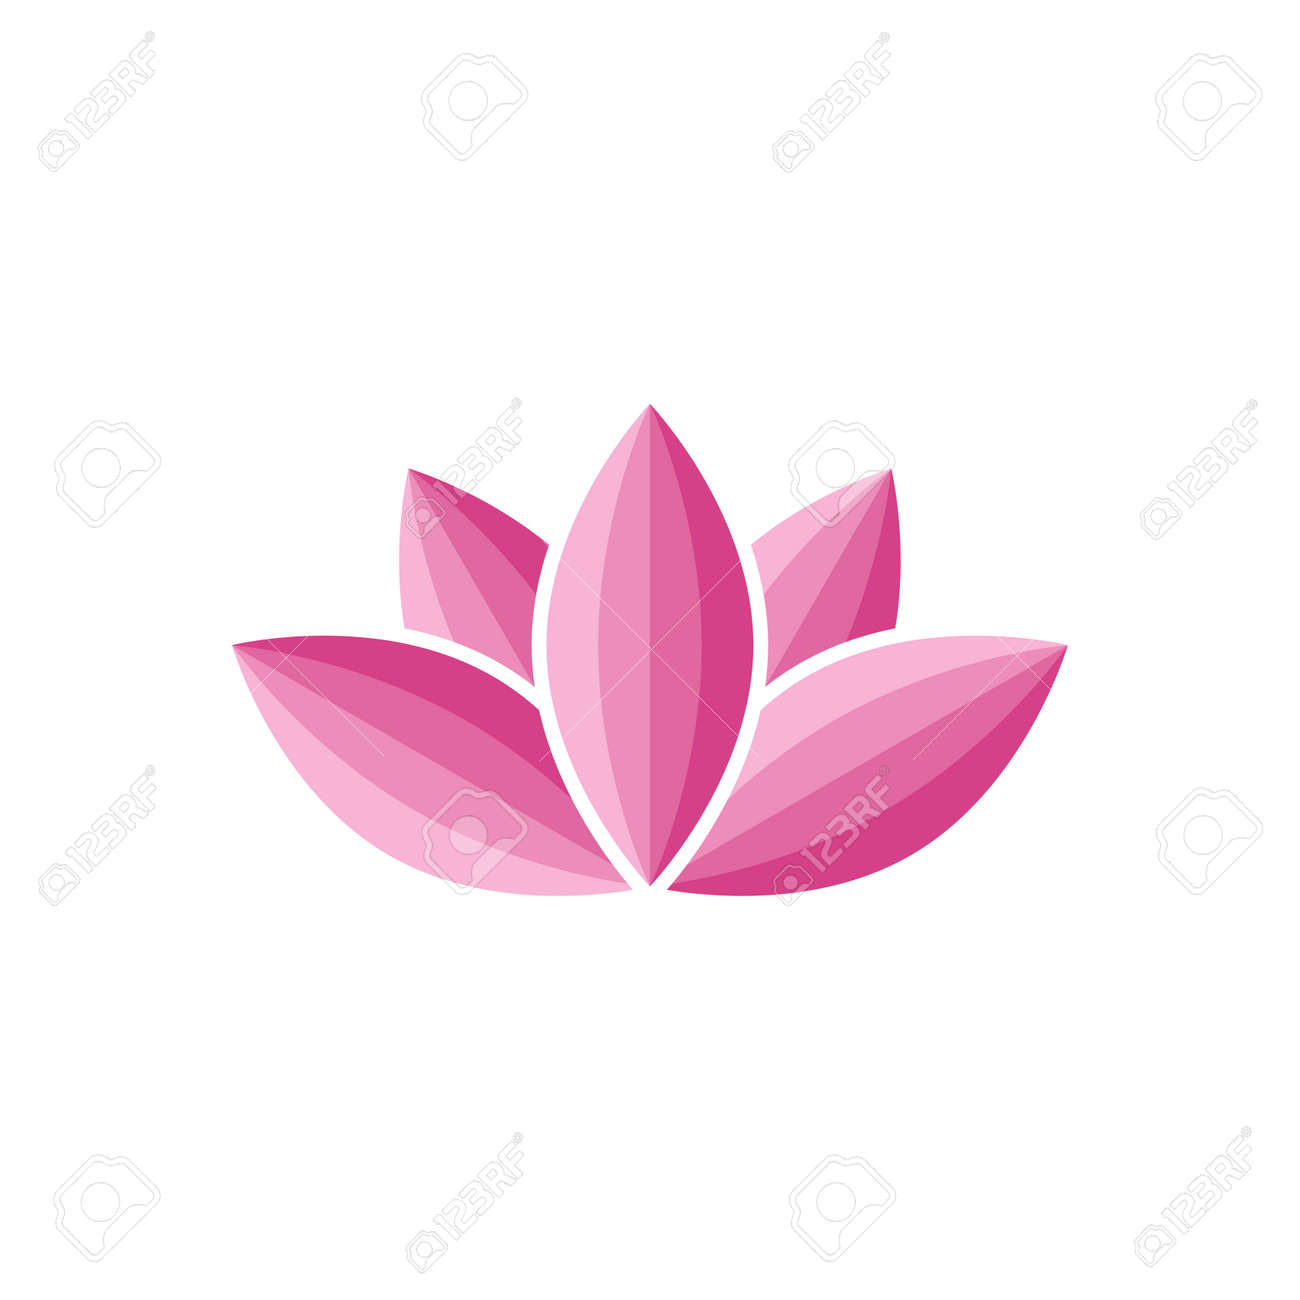 Lotus flower abstract water lily silhouette royalty free cliparts lotus flower abstract water lily silhouette stock vector 93986010 mightylinksfo